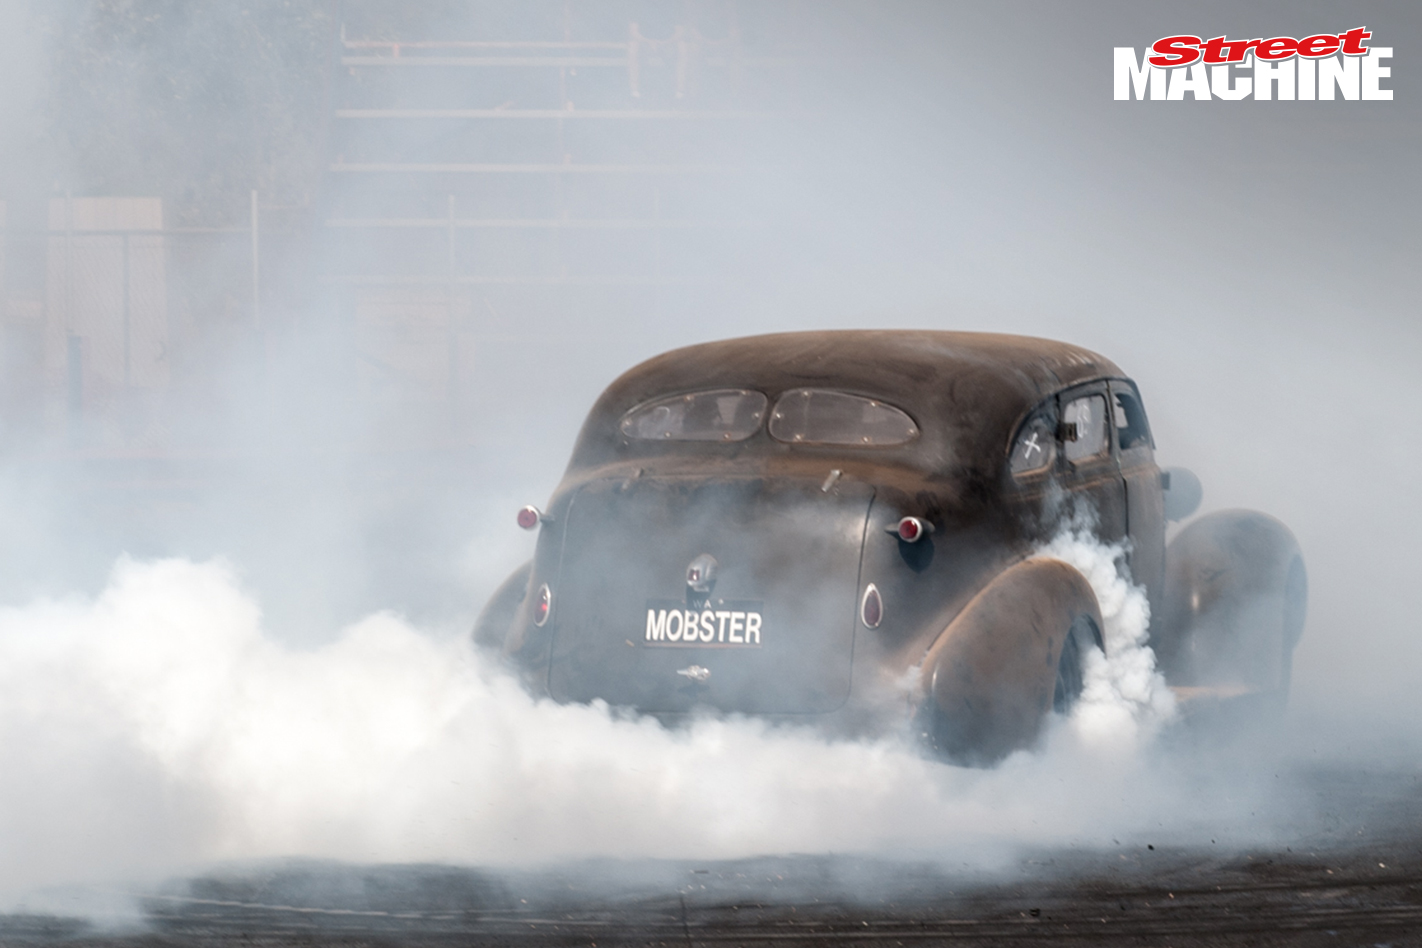 MOBSTER Burnout 5738